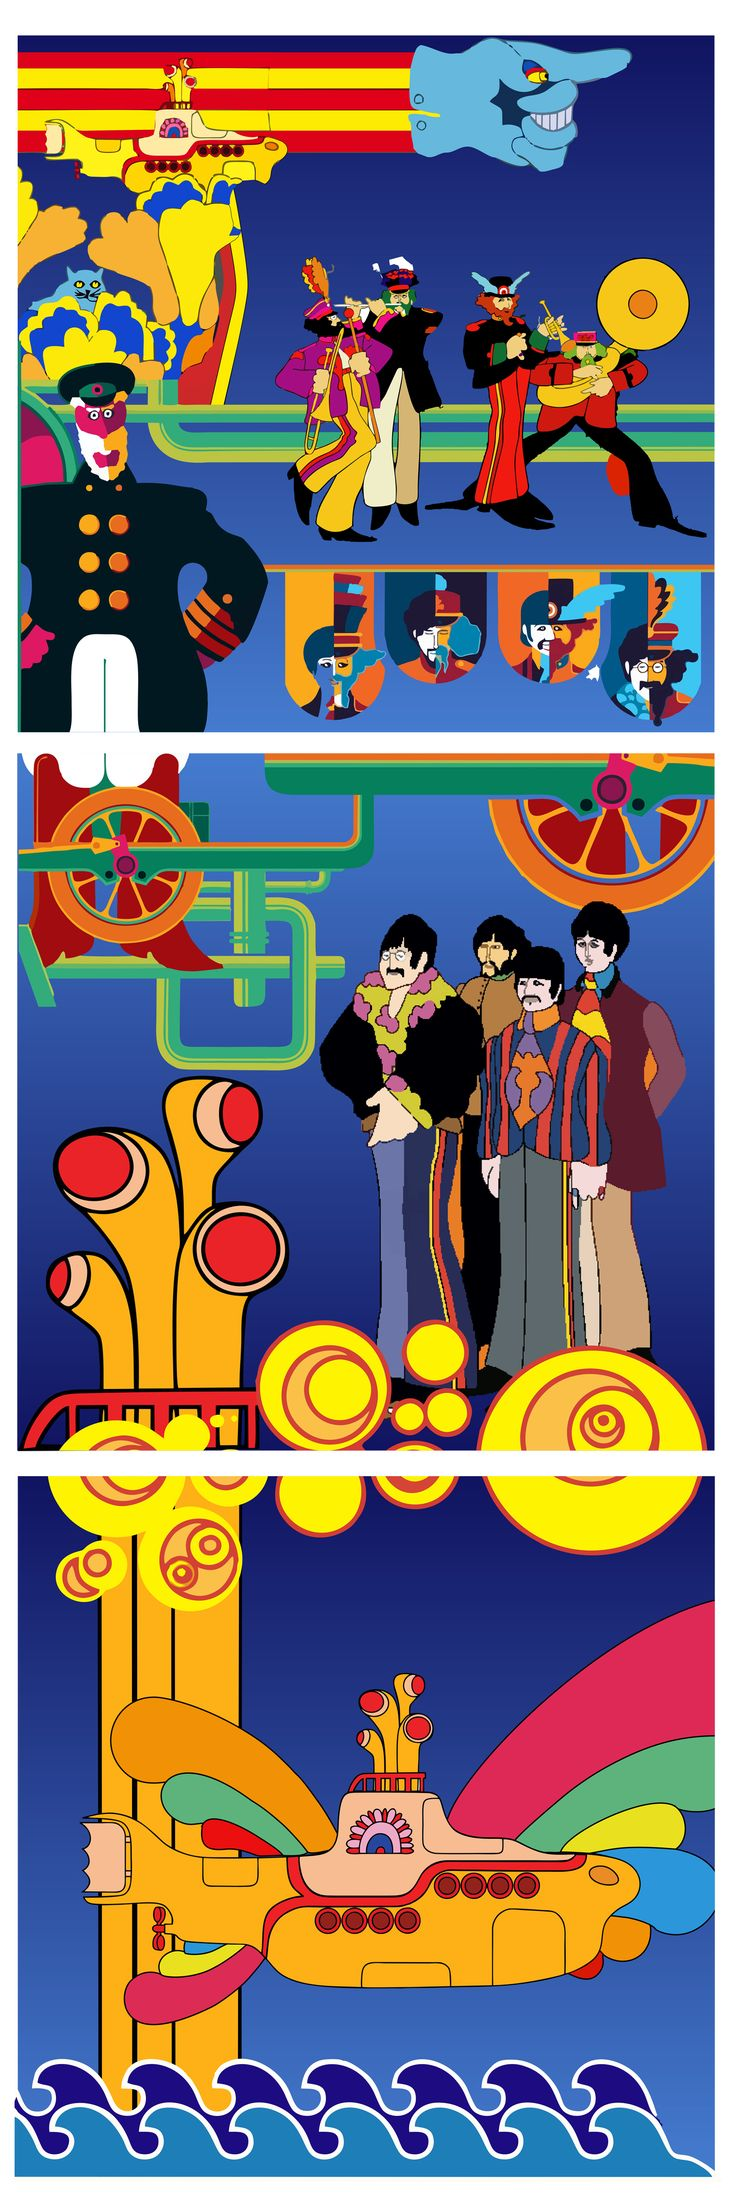 Image result for yellow submarine doodle